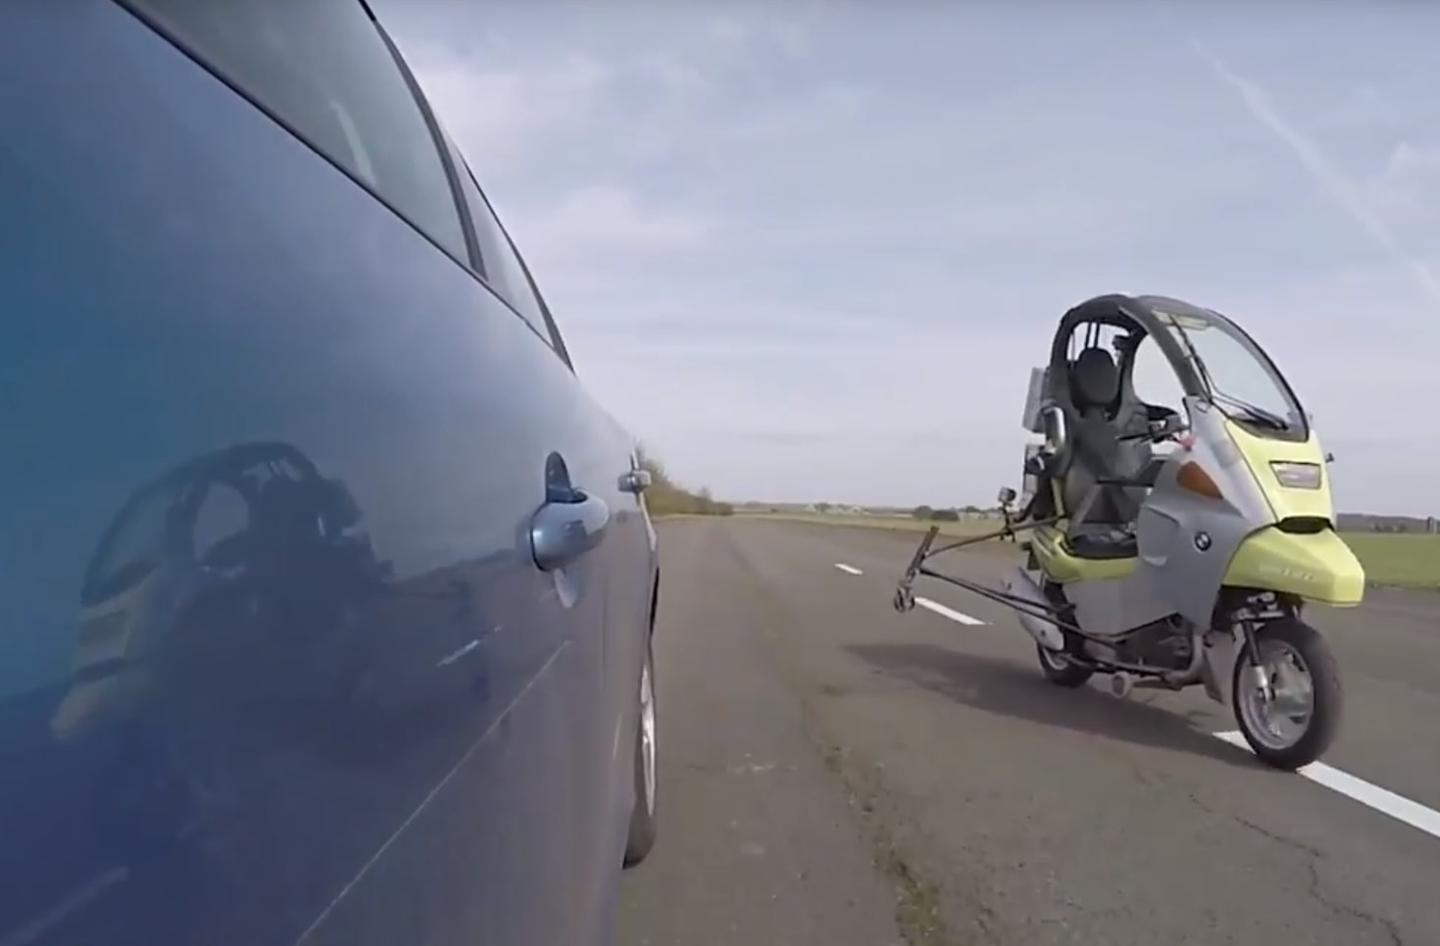 AB's self-driving scooter executes a quick overtaking move on a self-driving car